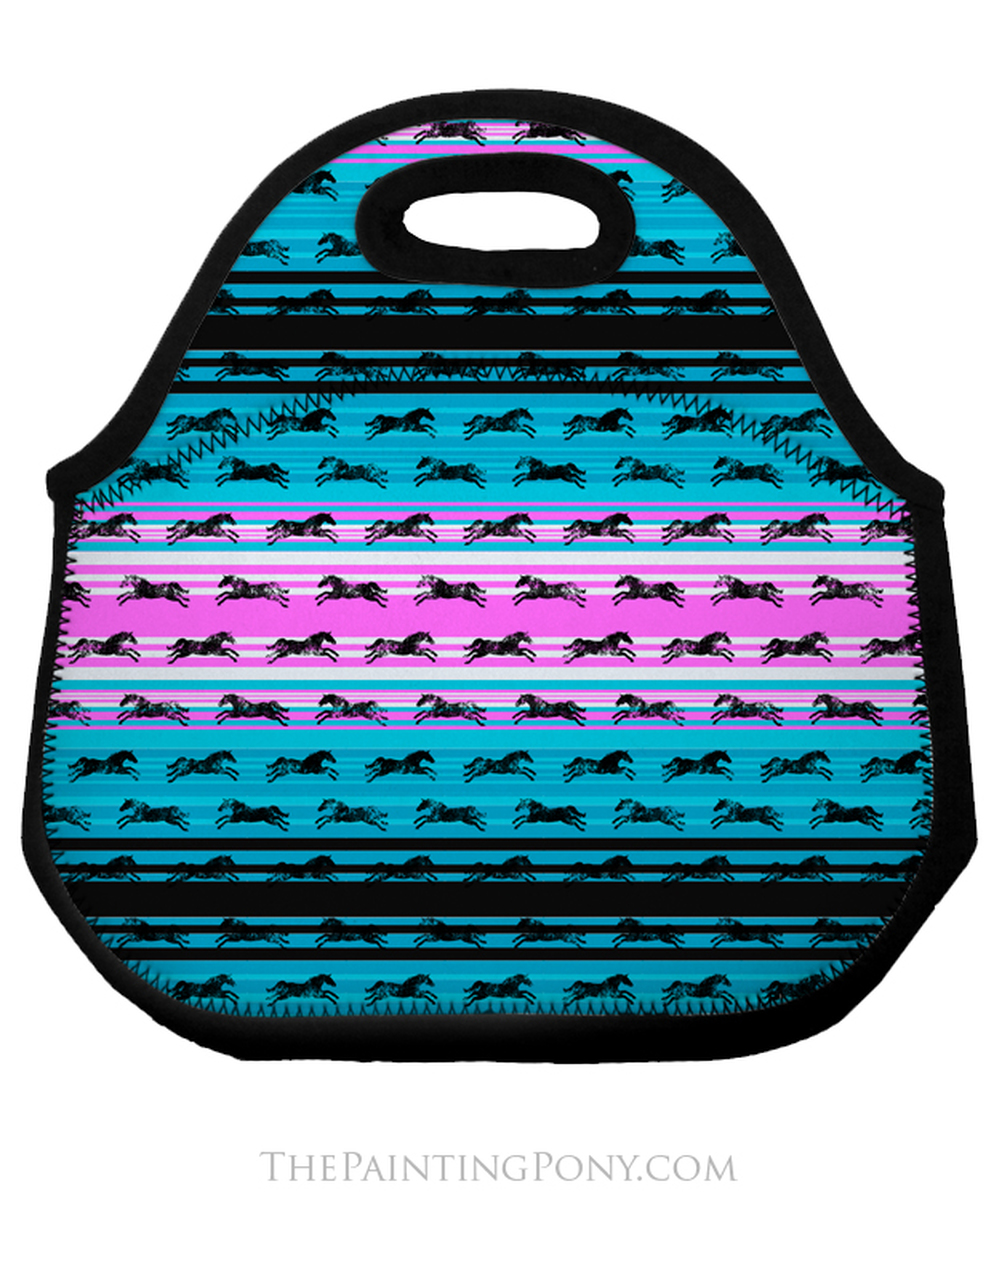 Serape horse pictures clipart jpg library library Serape Galloping Horses Pattern Equestrian Lunch Tote Bag jpg library library